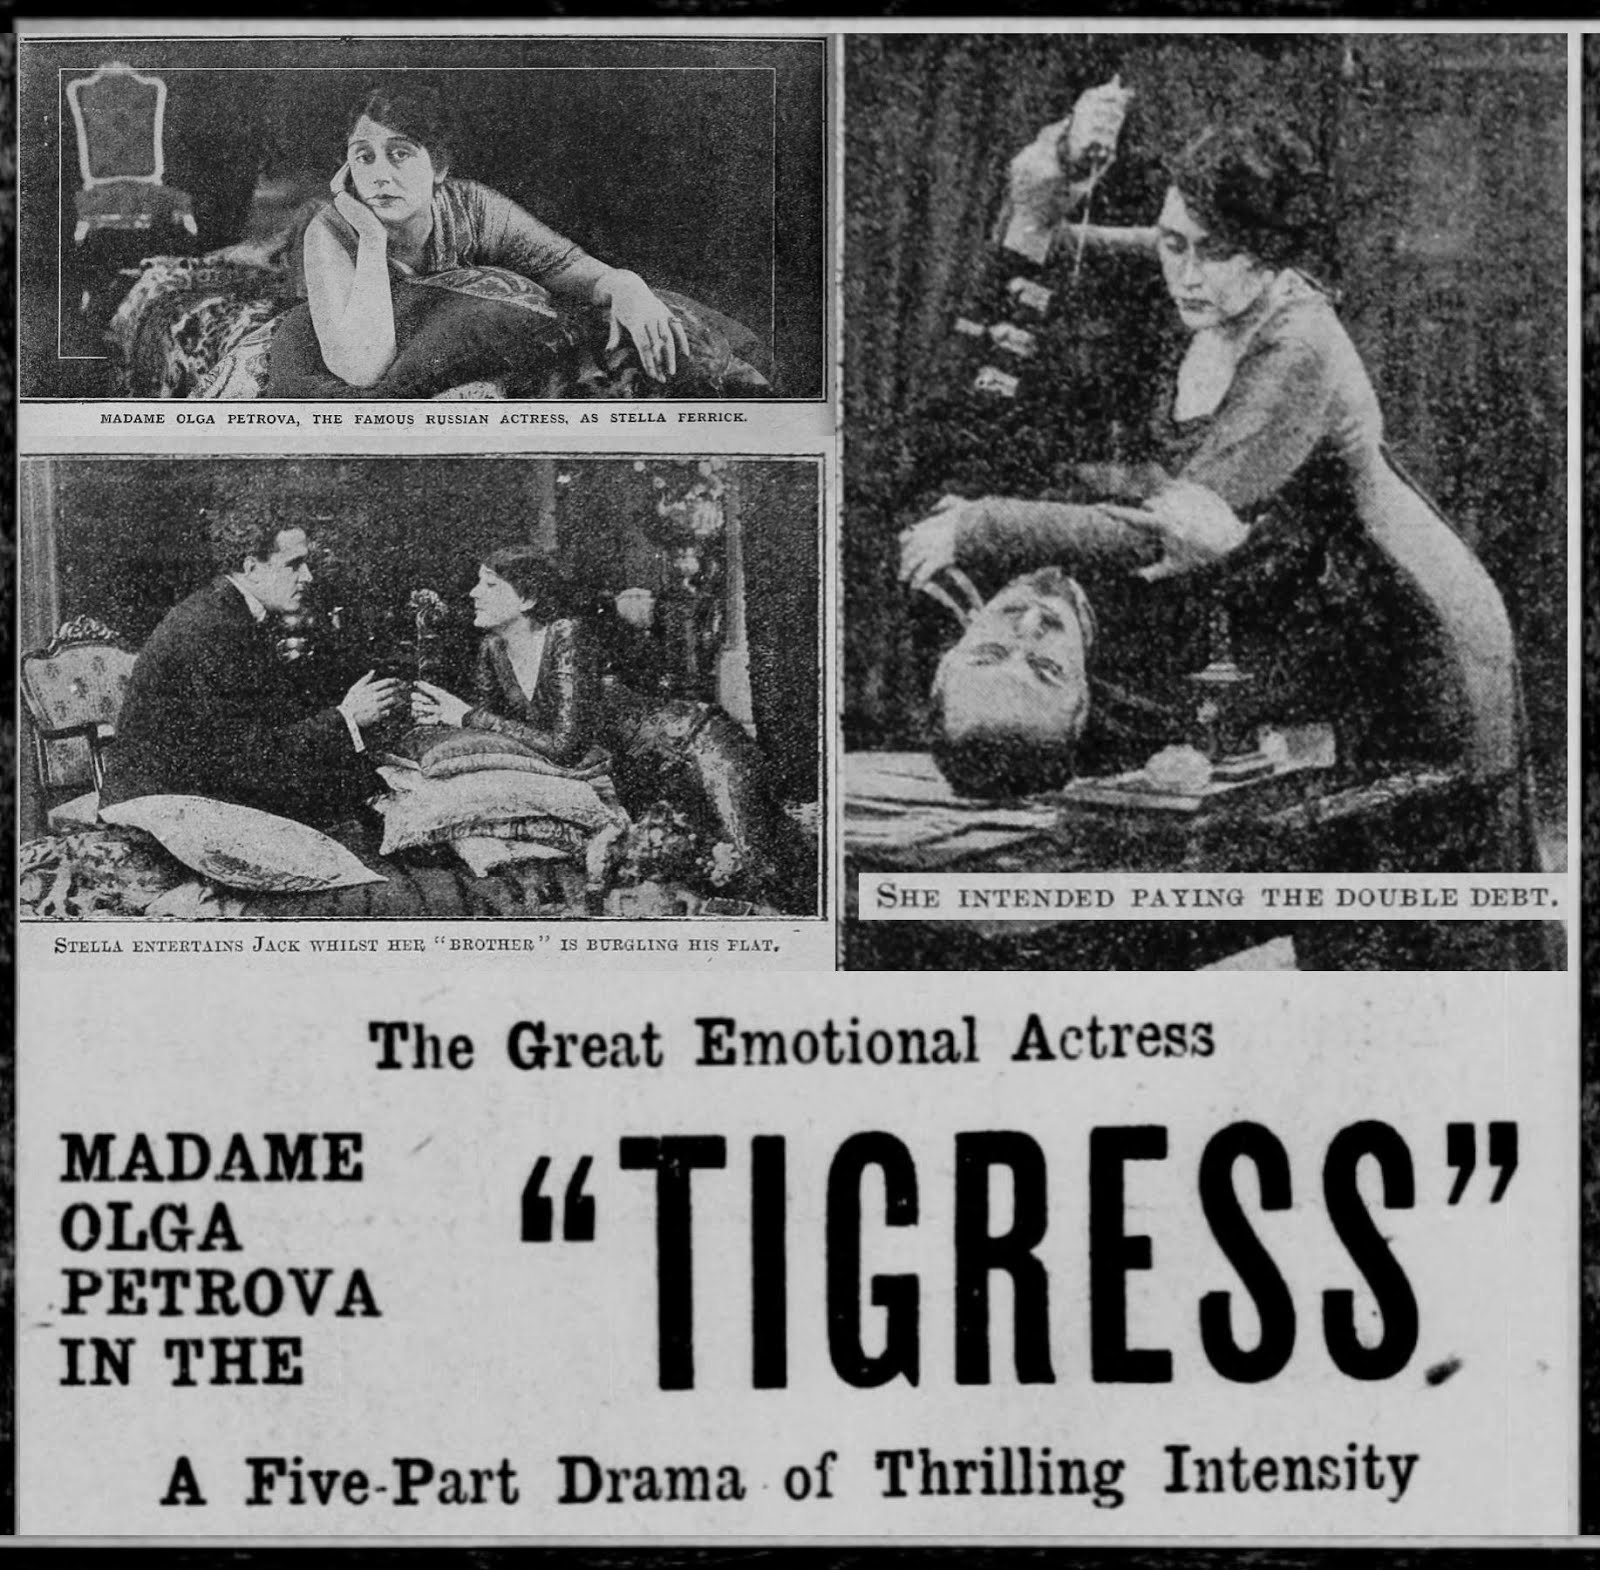 The TIGRESS by Alice Guy Blache with Olga Petrova